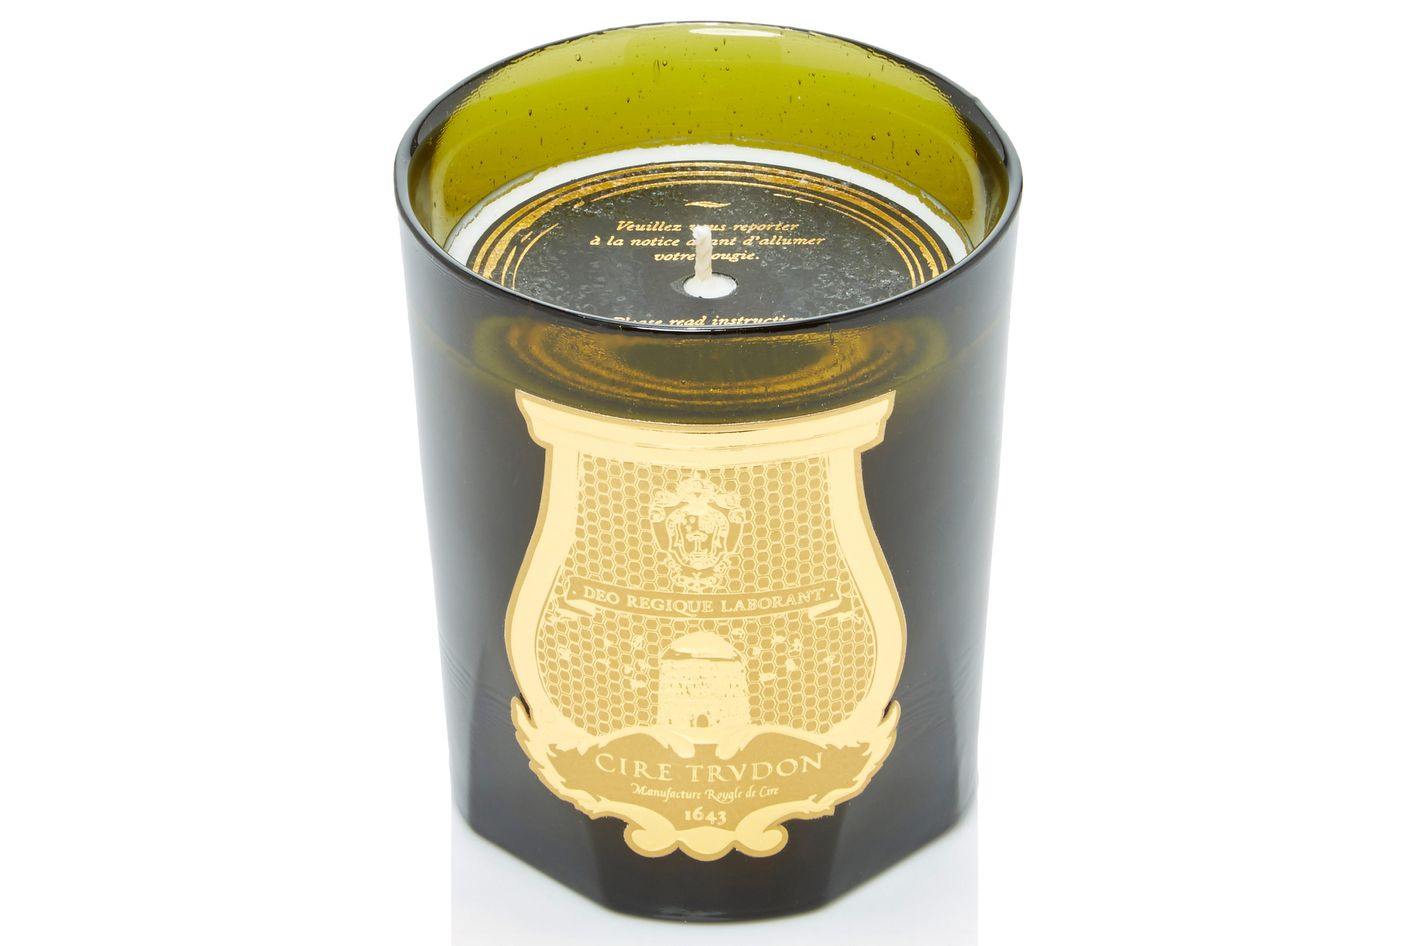 Cire Trudon Bartelomé Classic Candle